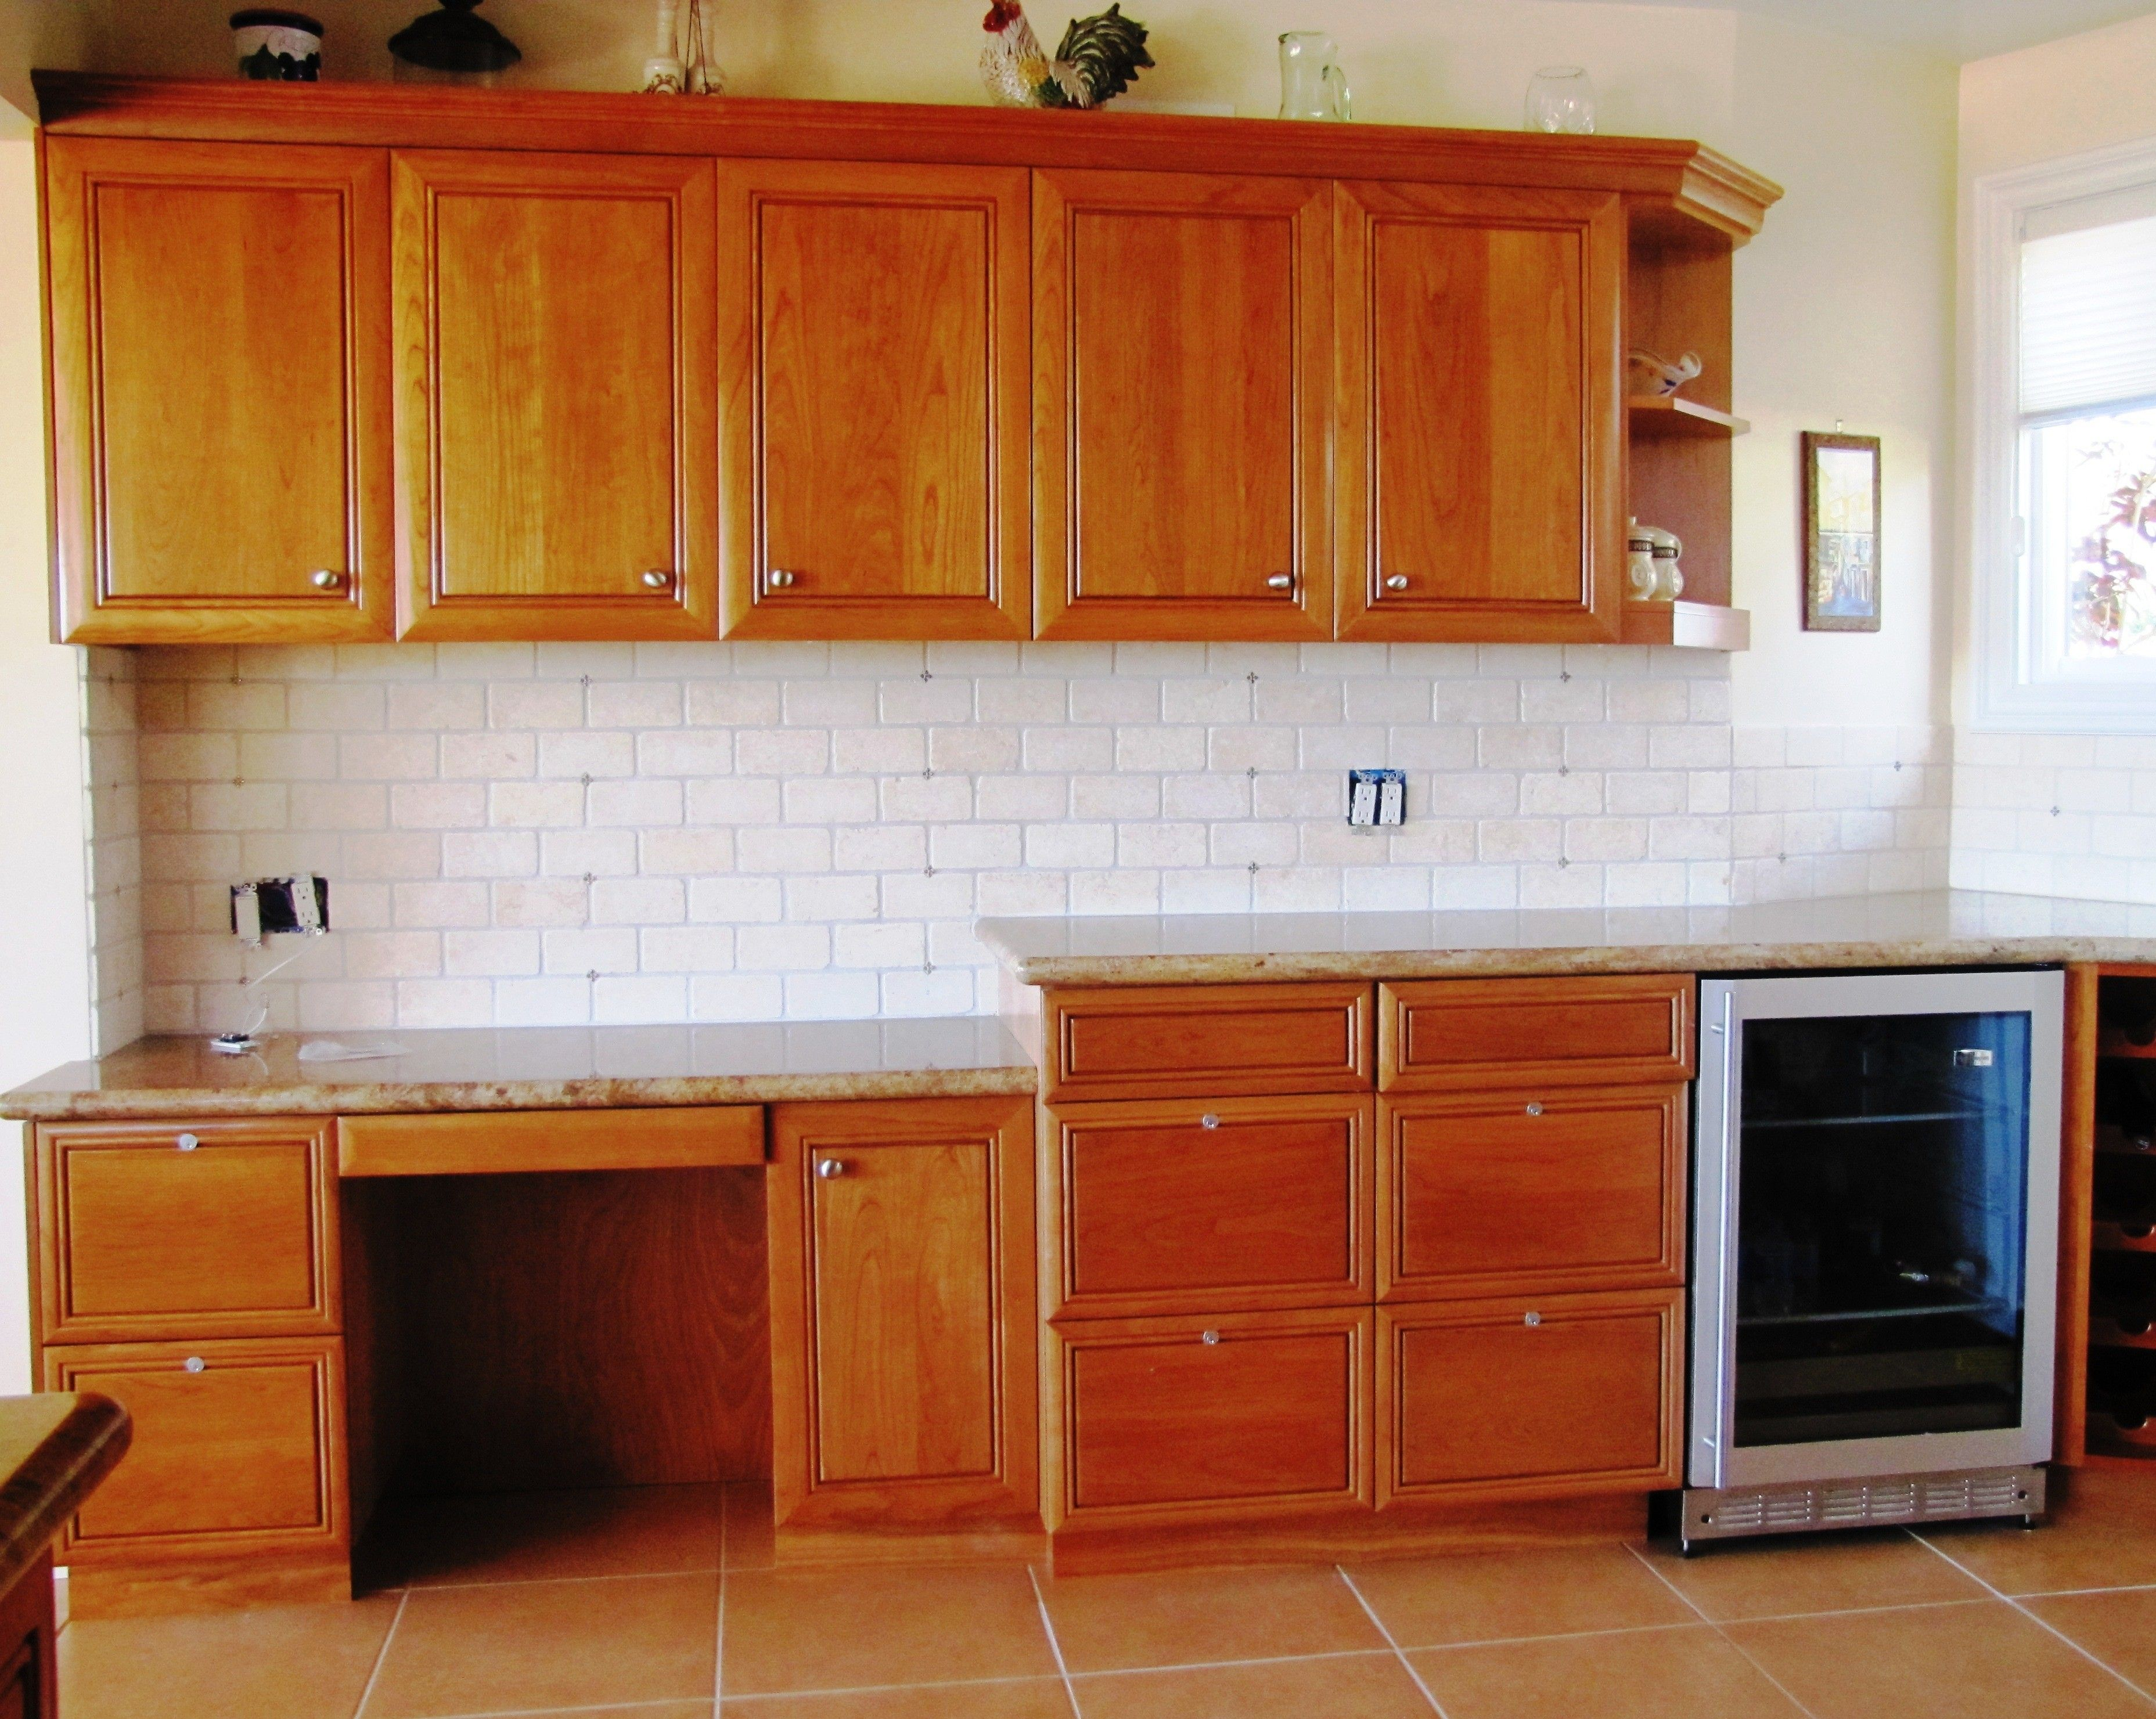 - Subway Tile Backsplash Kitchen With Medium Wood Cabinets - Google